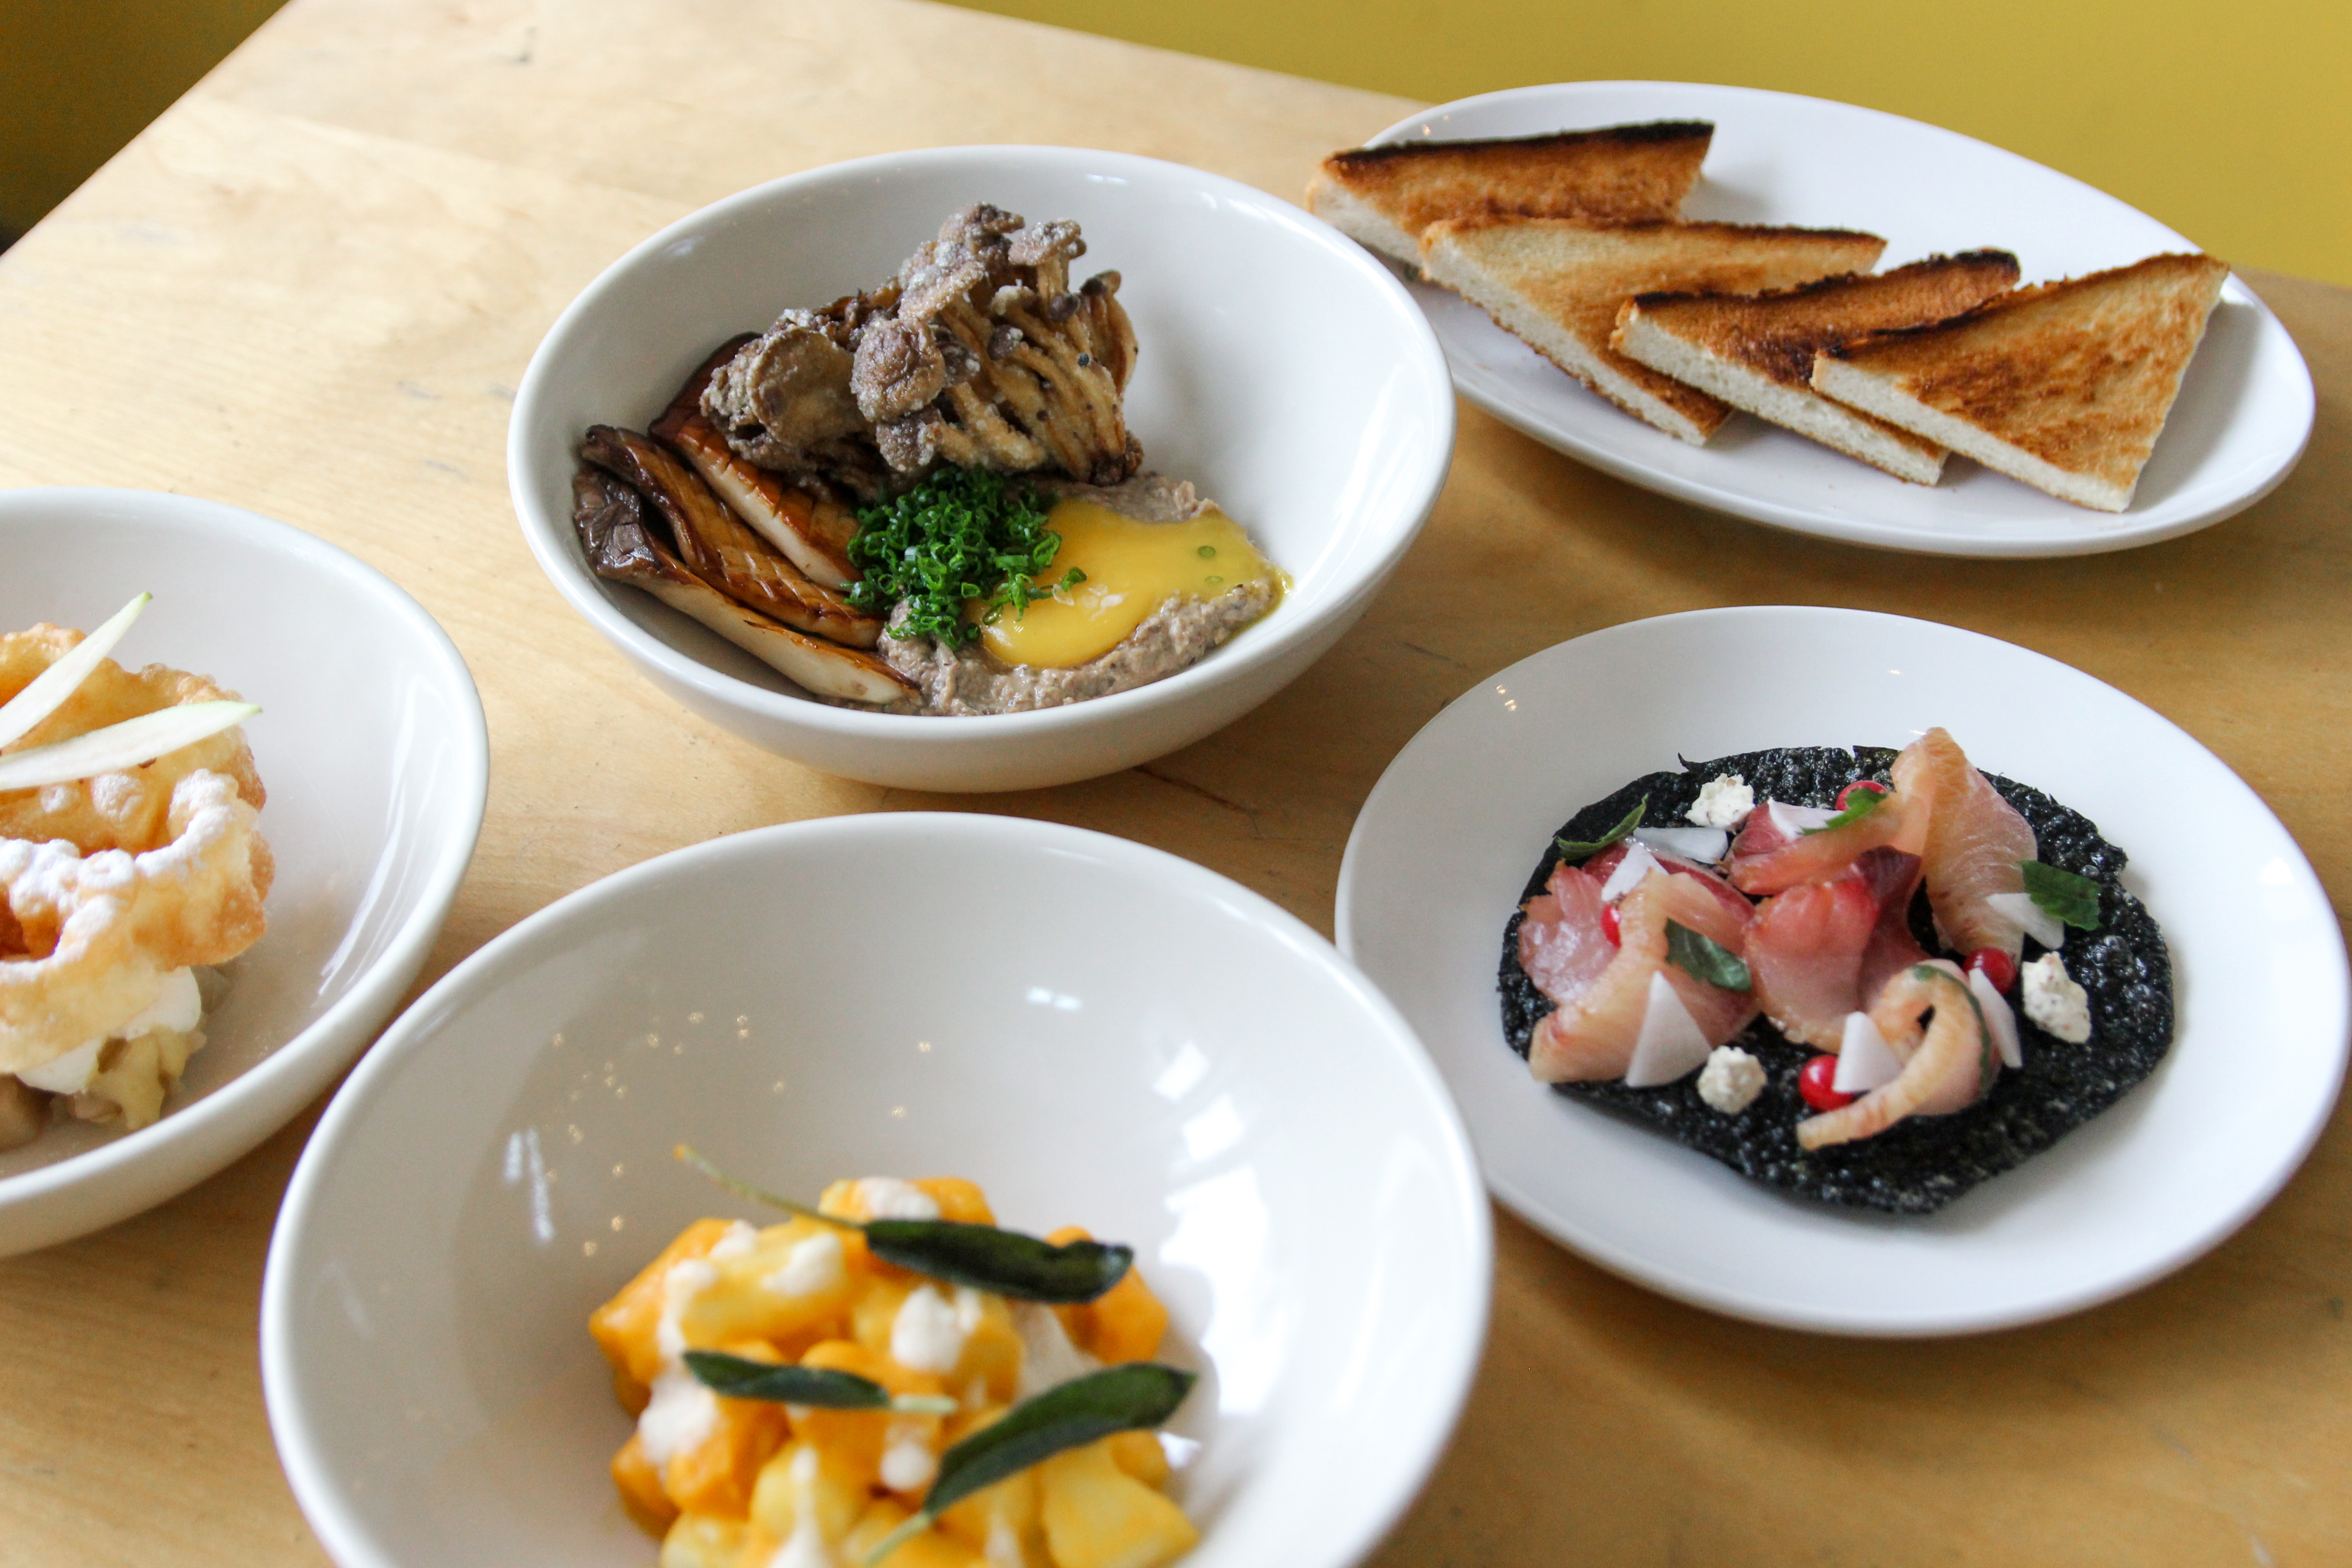 Several dishes composed of stylishly plated foods sitting on a wooden table